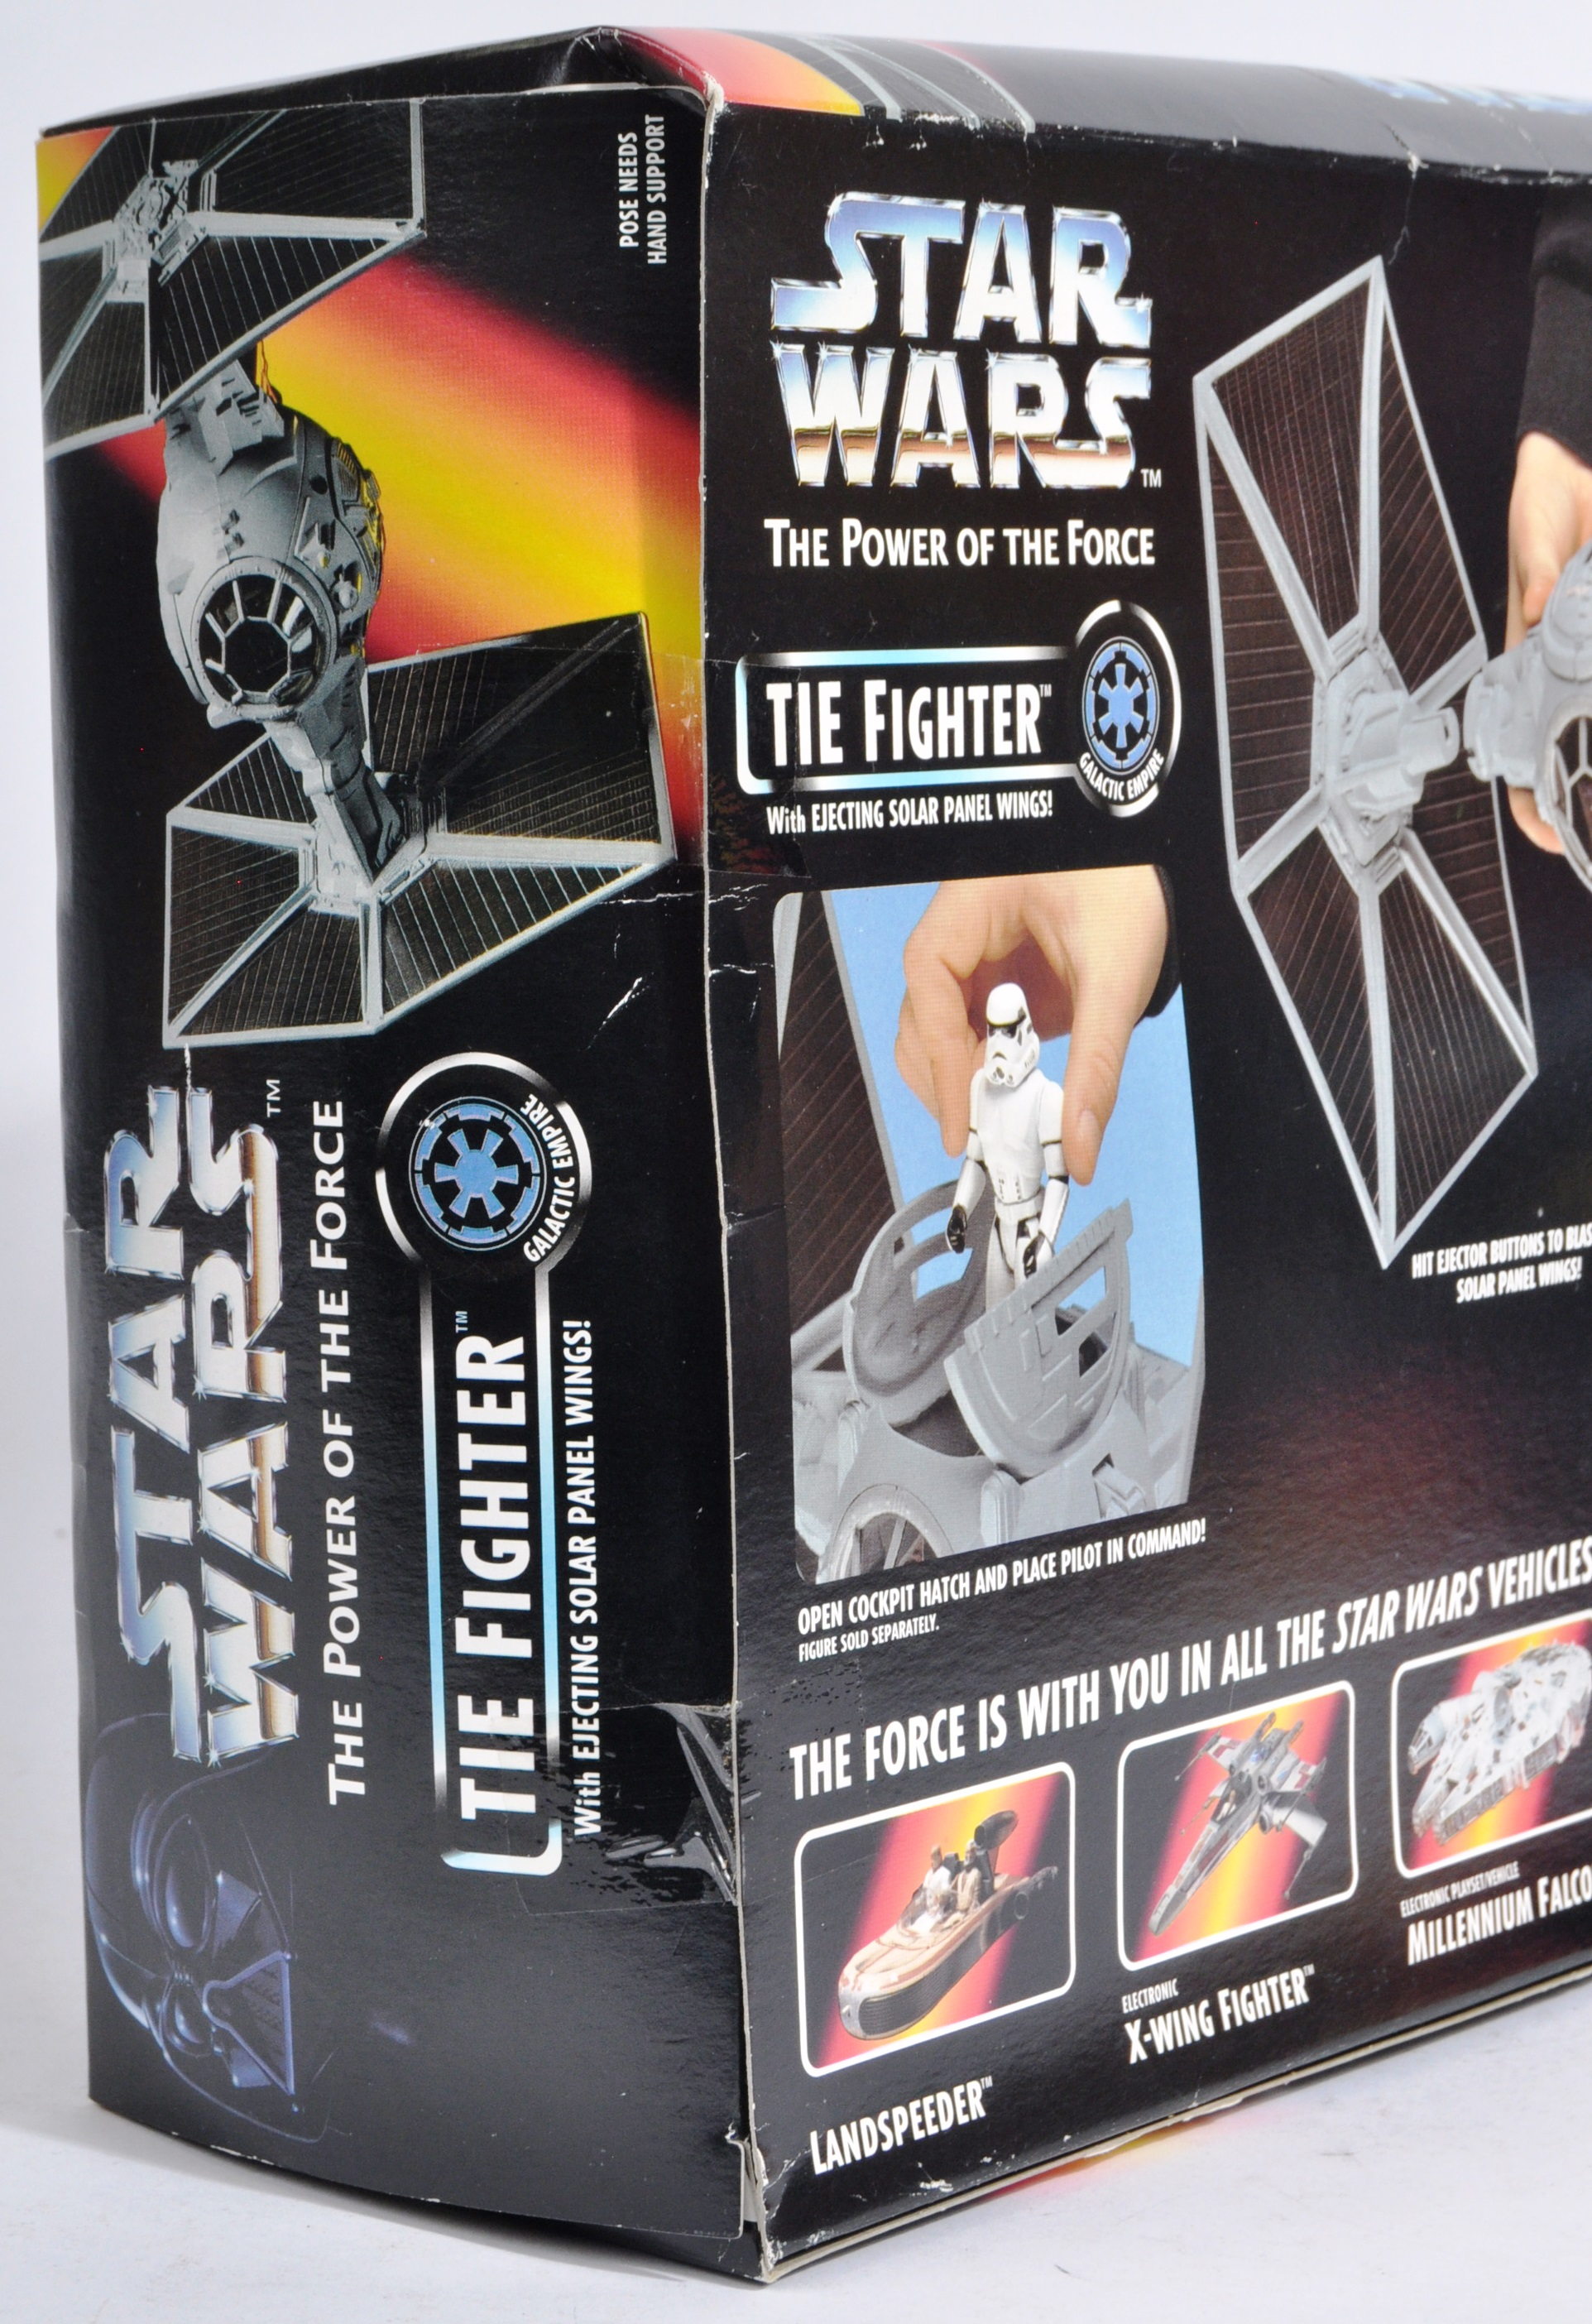 STAR WARS - COLLECTION OF KENNER POWER OF THE FORCES - Image 5 of 13